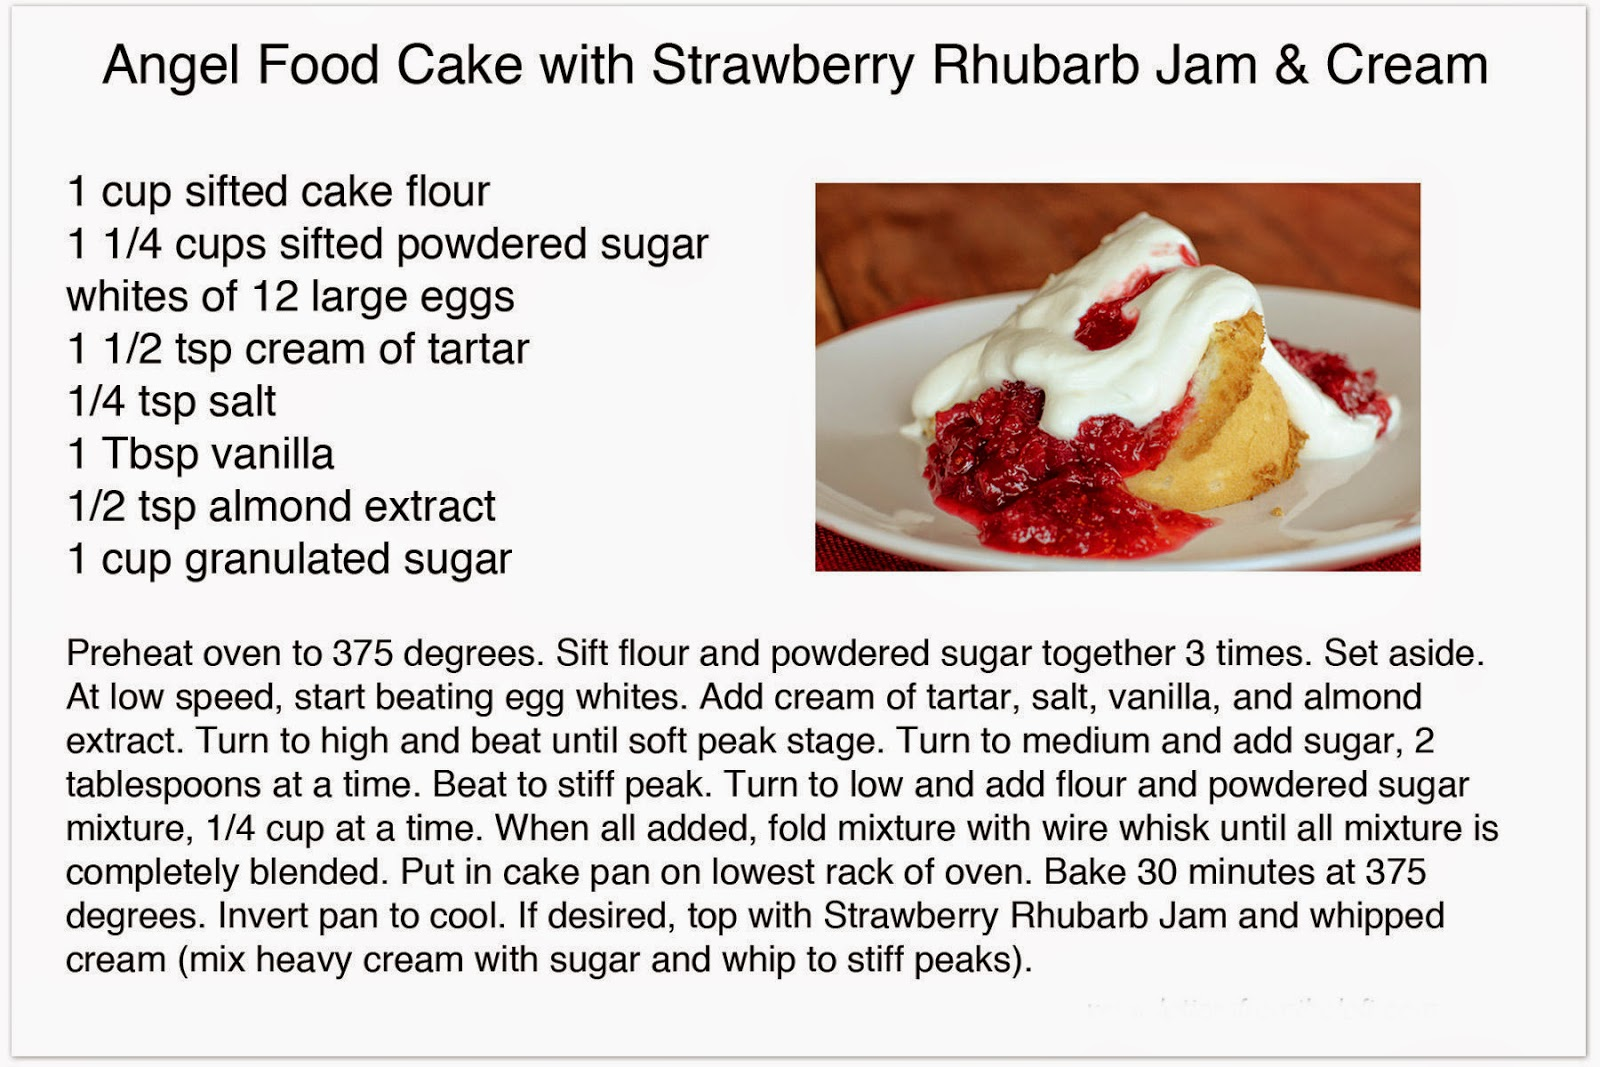 What Is Usually Served With Angel Food Cake